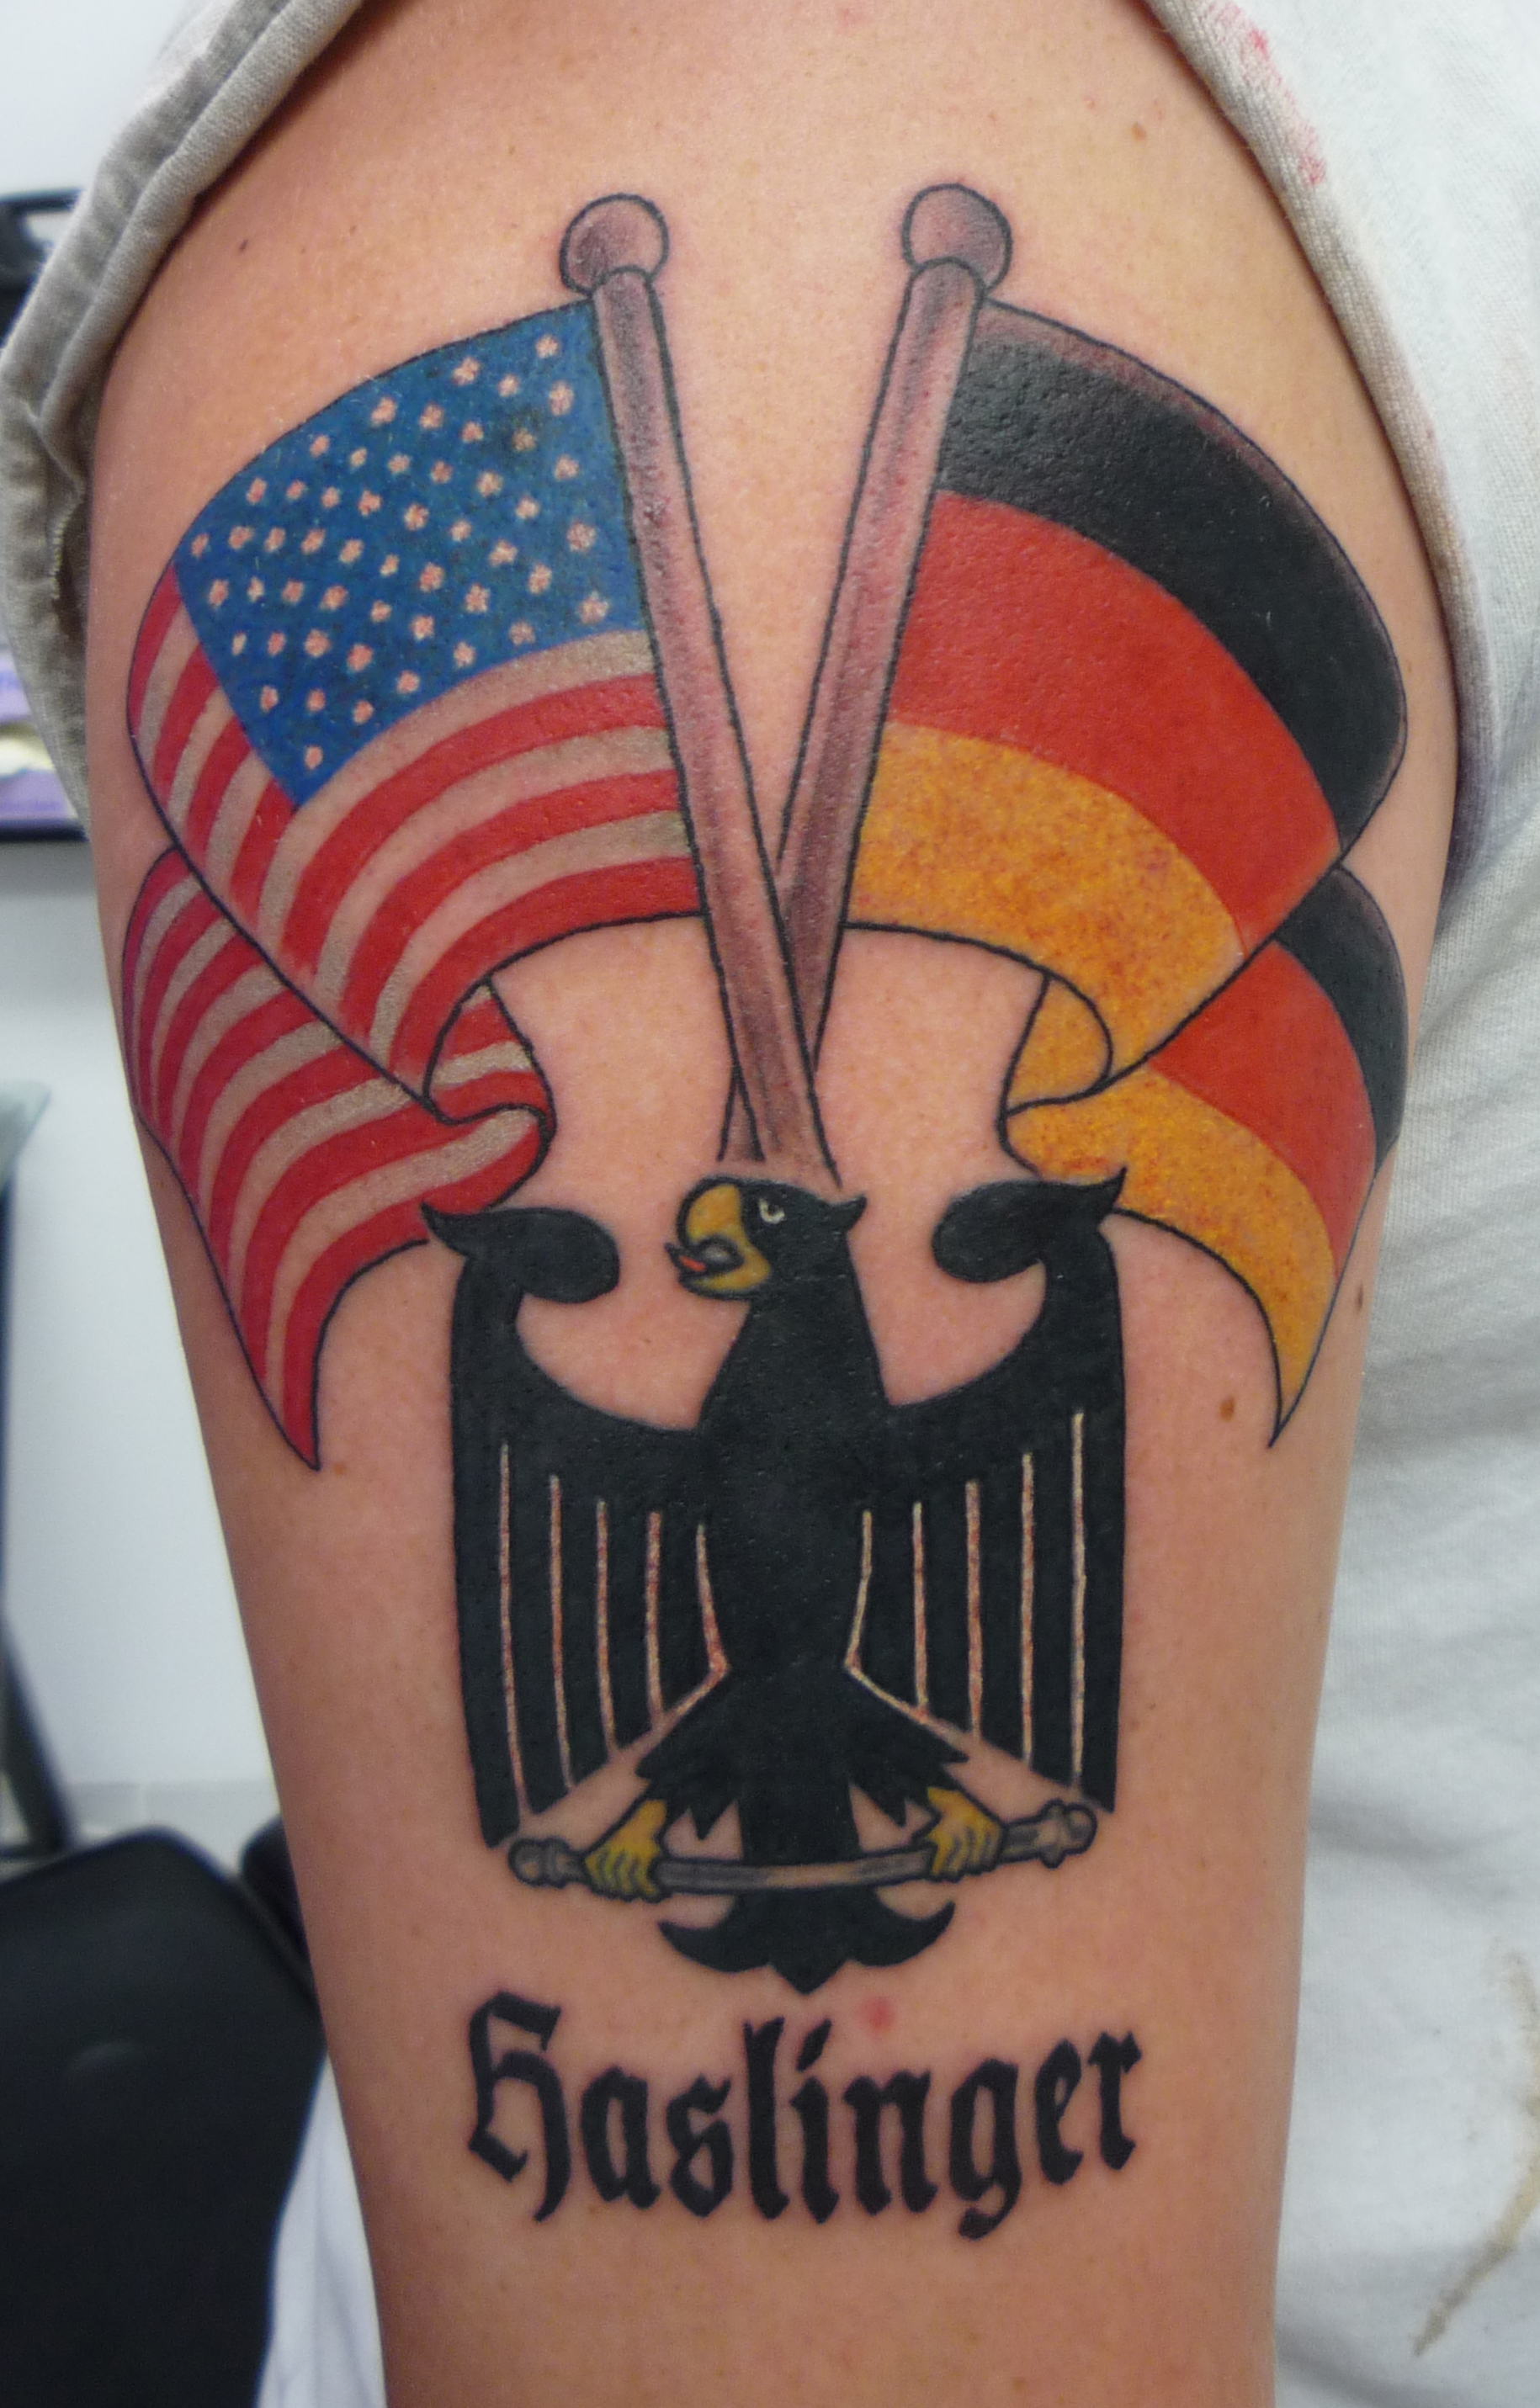 Google provides a treasure trove of poor German-inspired tattoo choices.